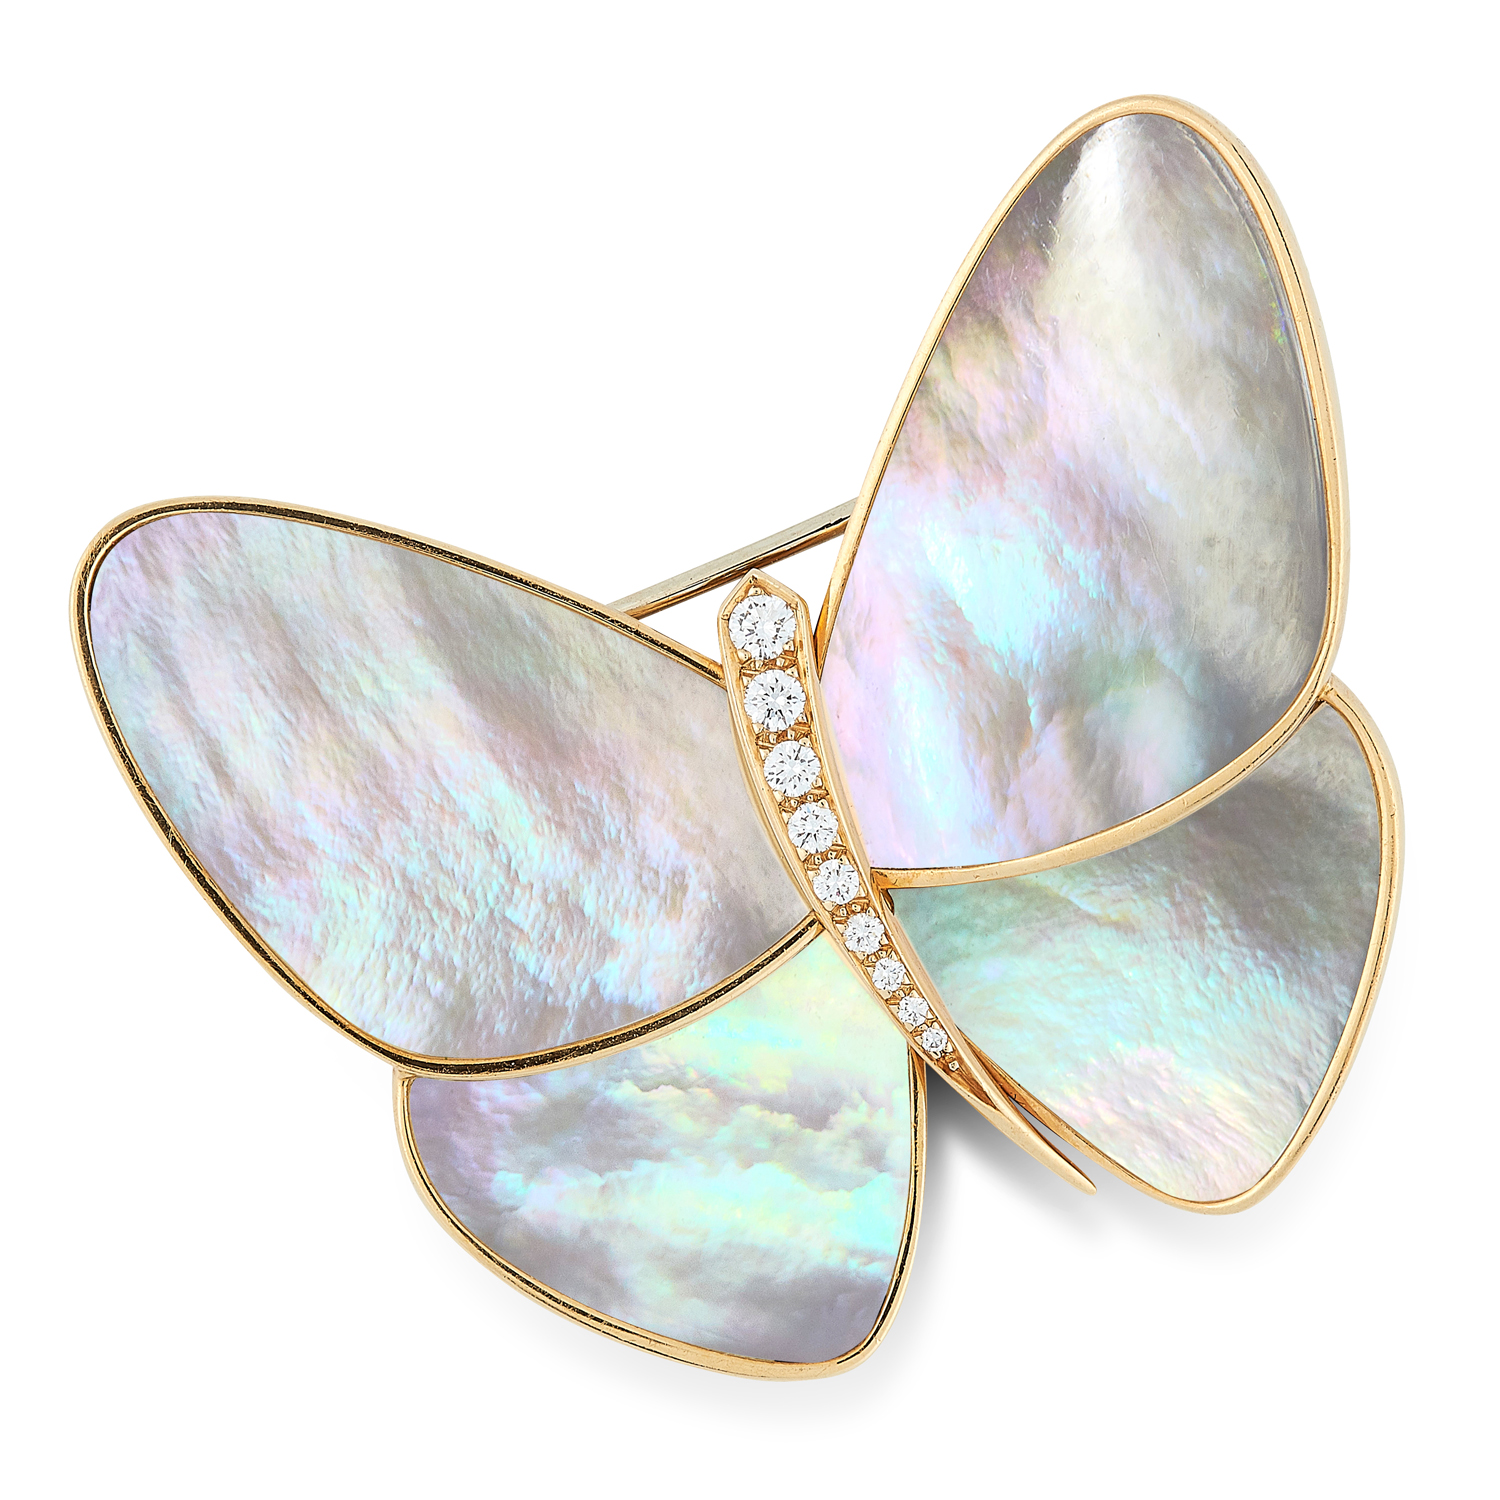 A MOTHER OF PEARL AND DIAMOND BUTTERFLY BROOCH, VA